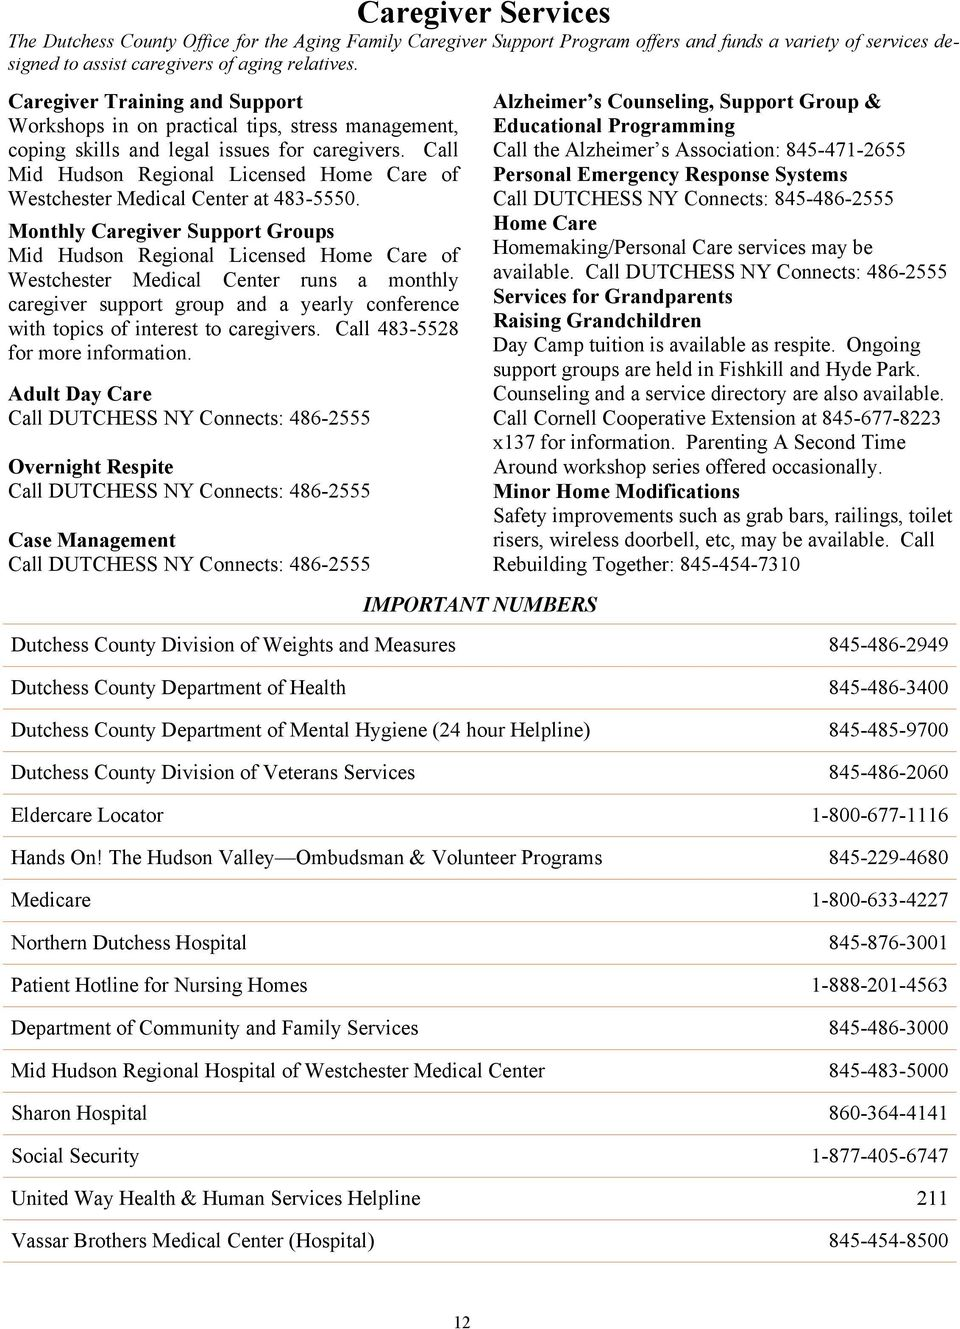 AGING SERVICES DIRECTORY - PDF